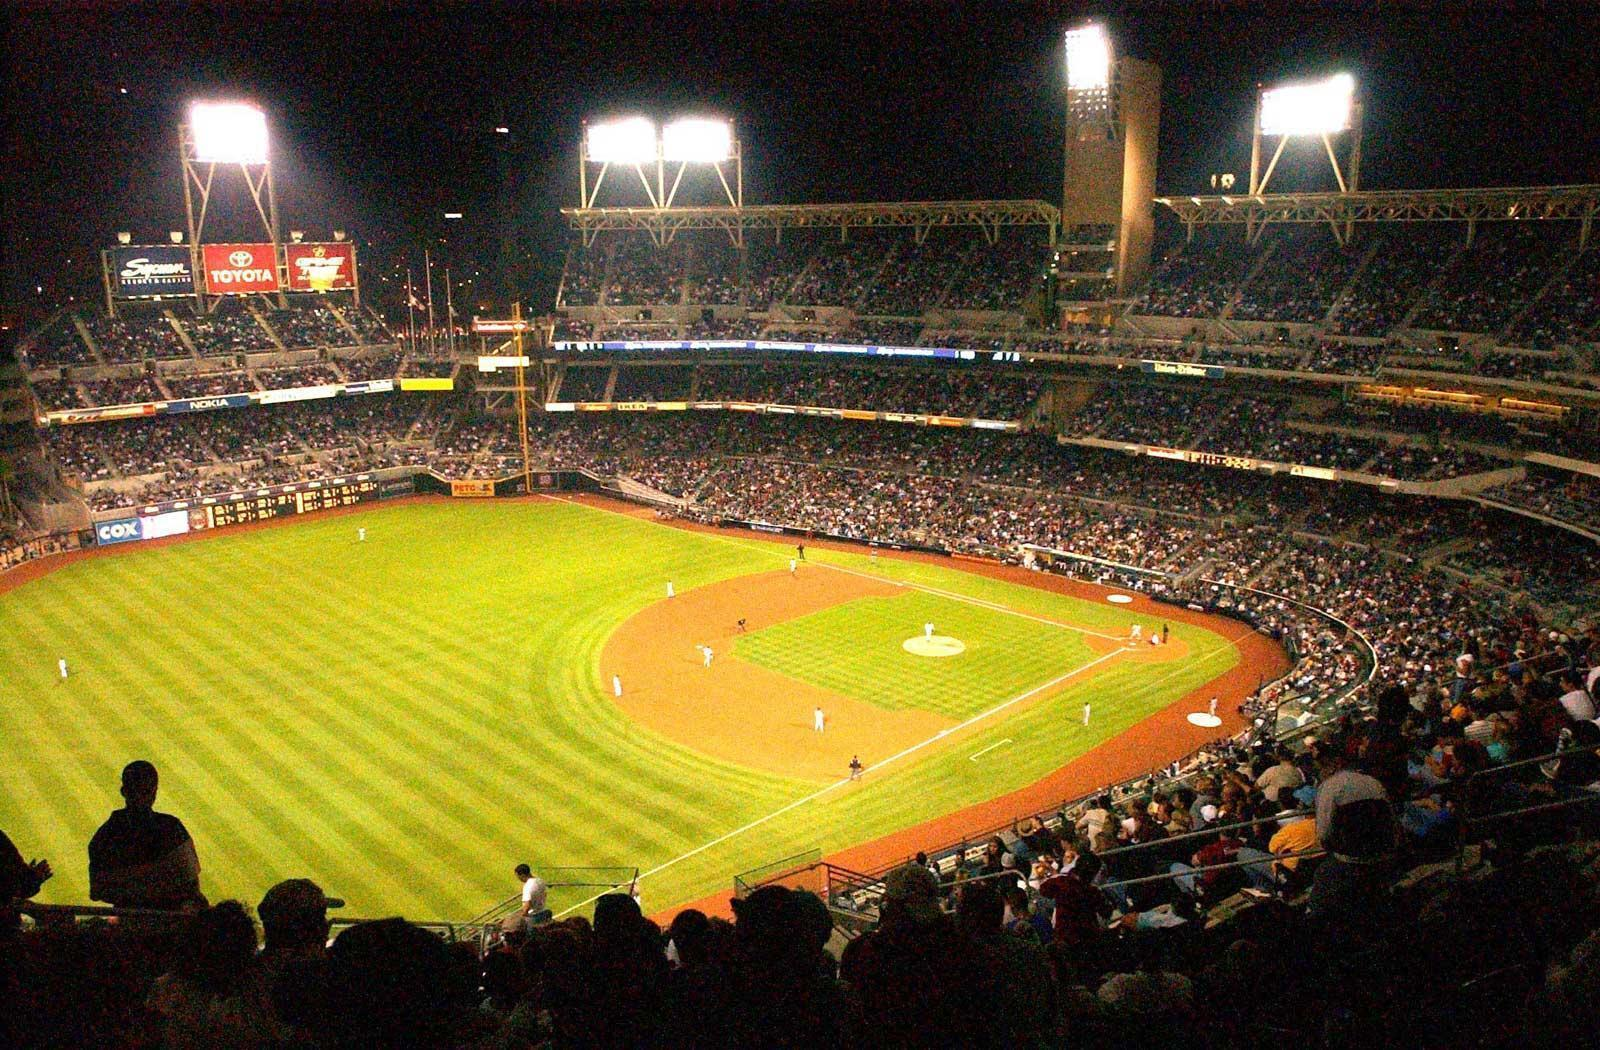 mlb baseball fields wallpaper - photo #8